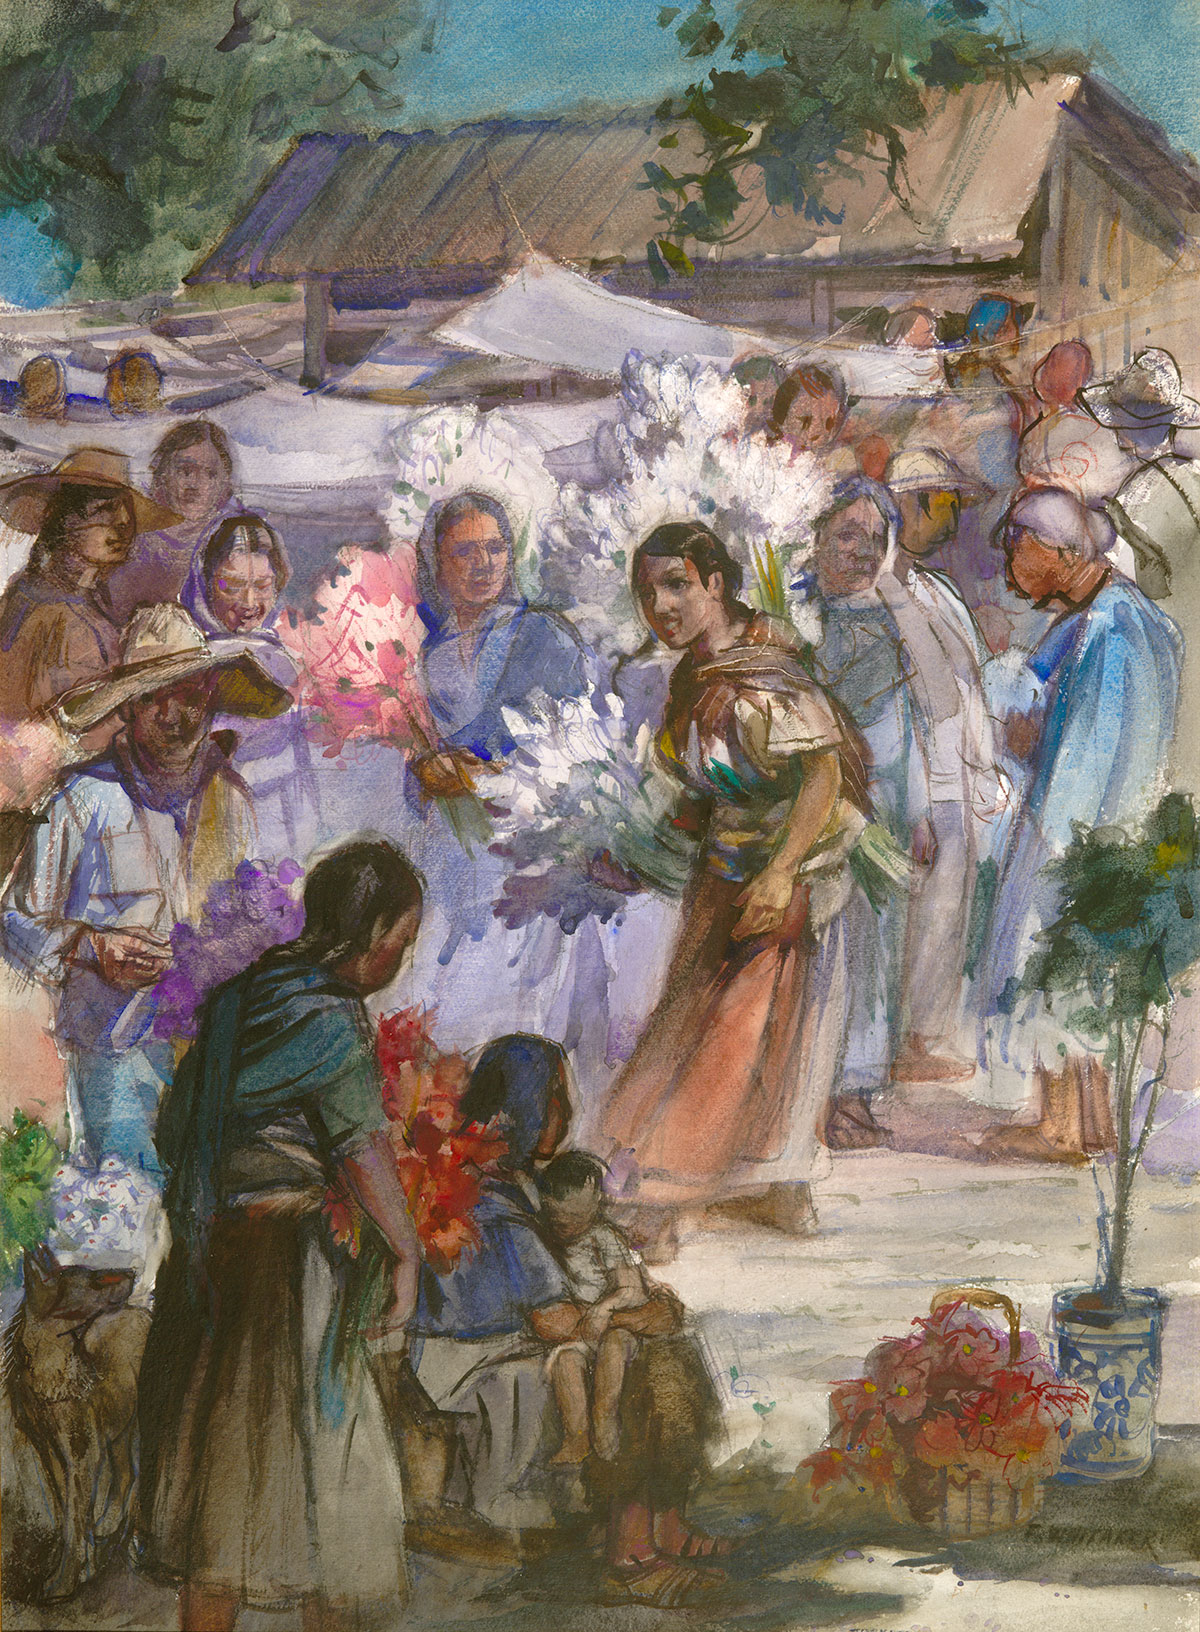 """""""Flower Market"""" (Xochimilco) 1977 © Frederic Whitaker N.A. 22x30 inches Watercolor"""